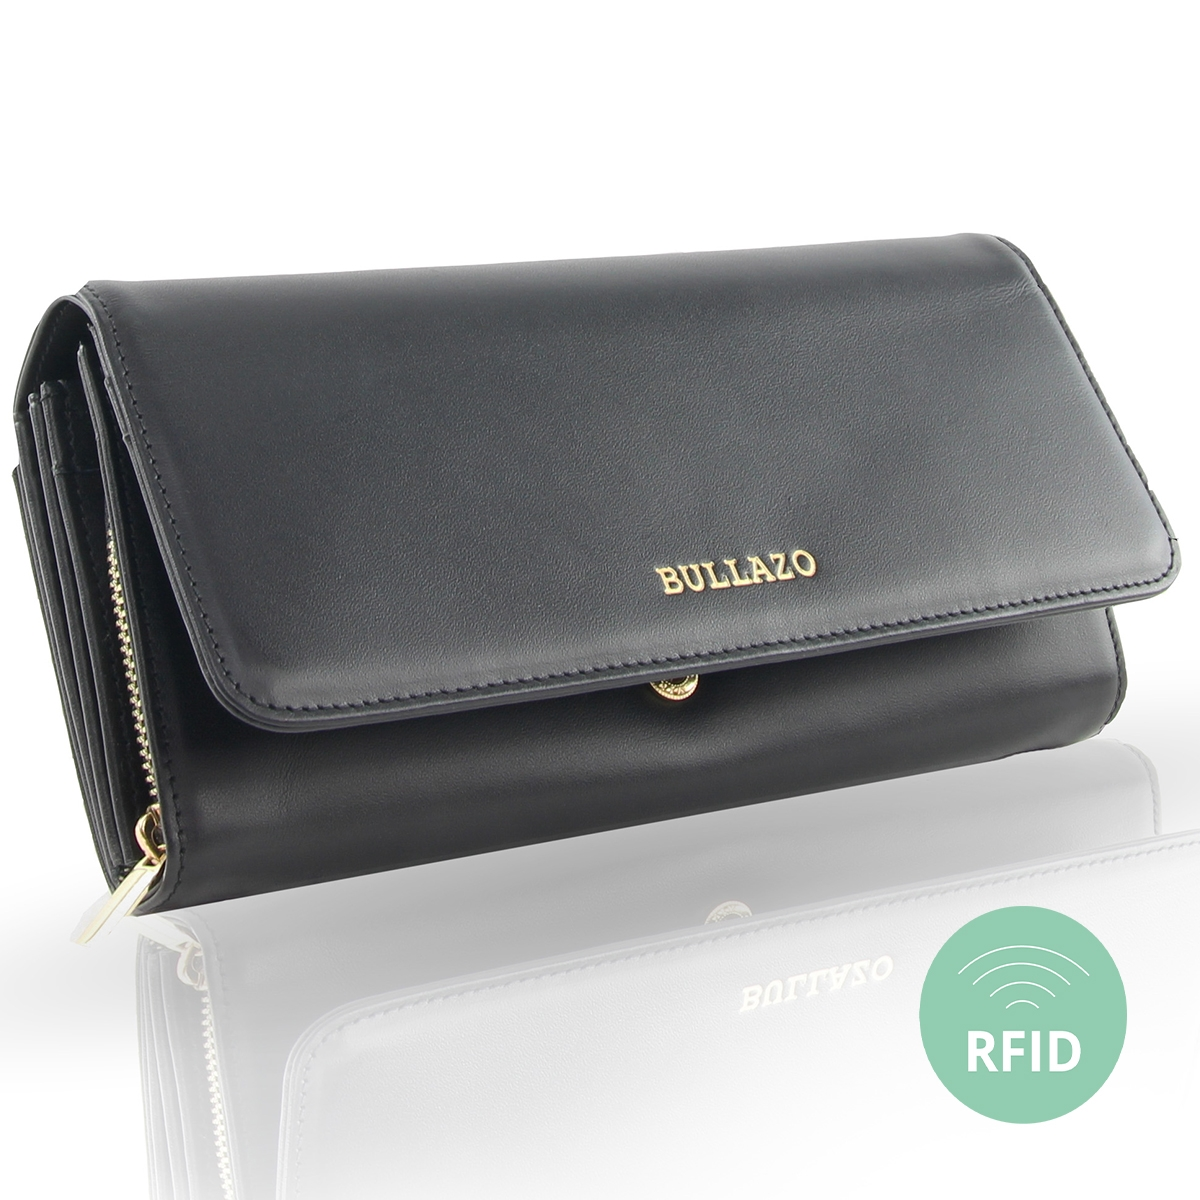 Leather wallet for women - extra large and with RFID blocker 4c1d866505b5